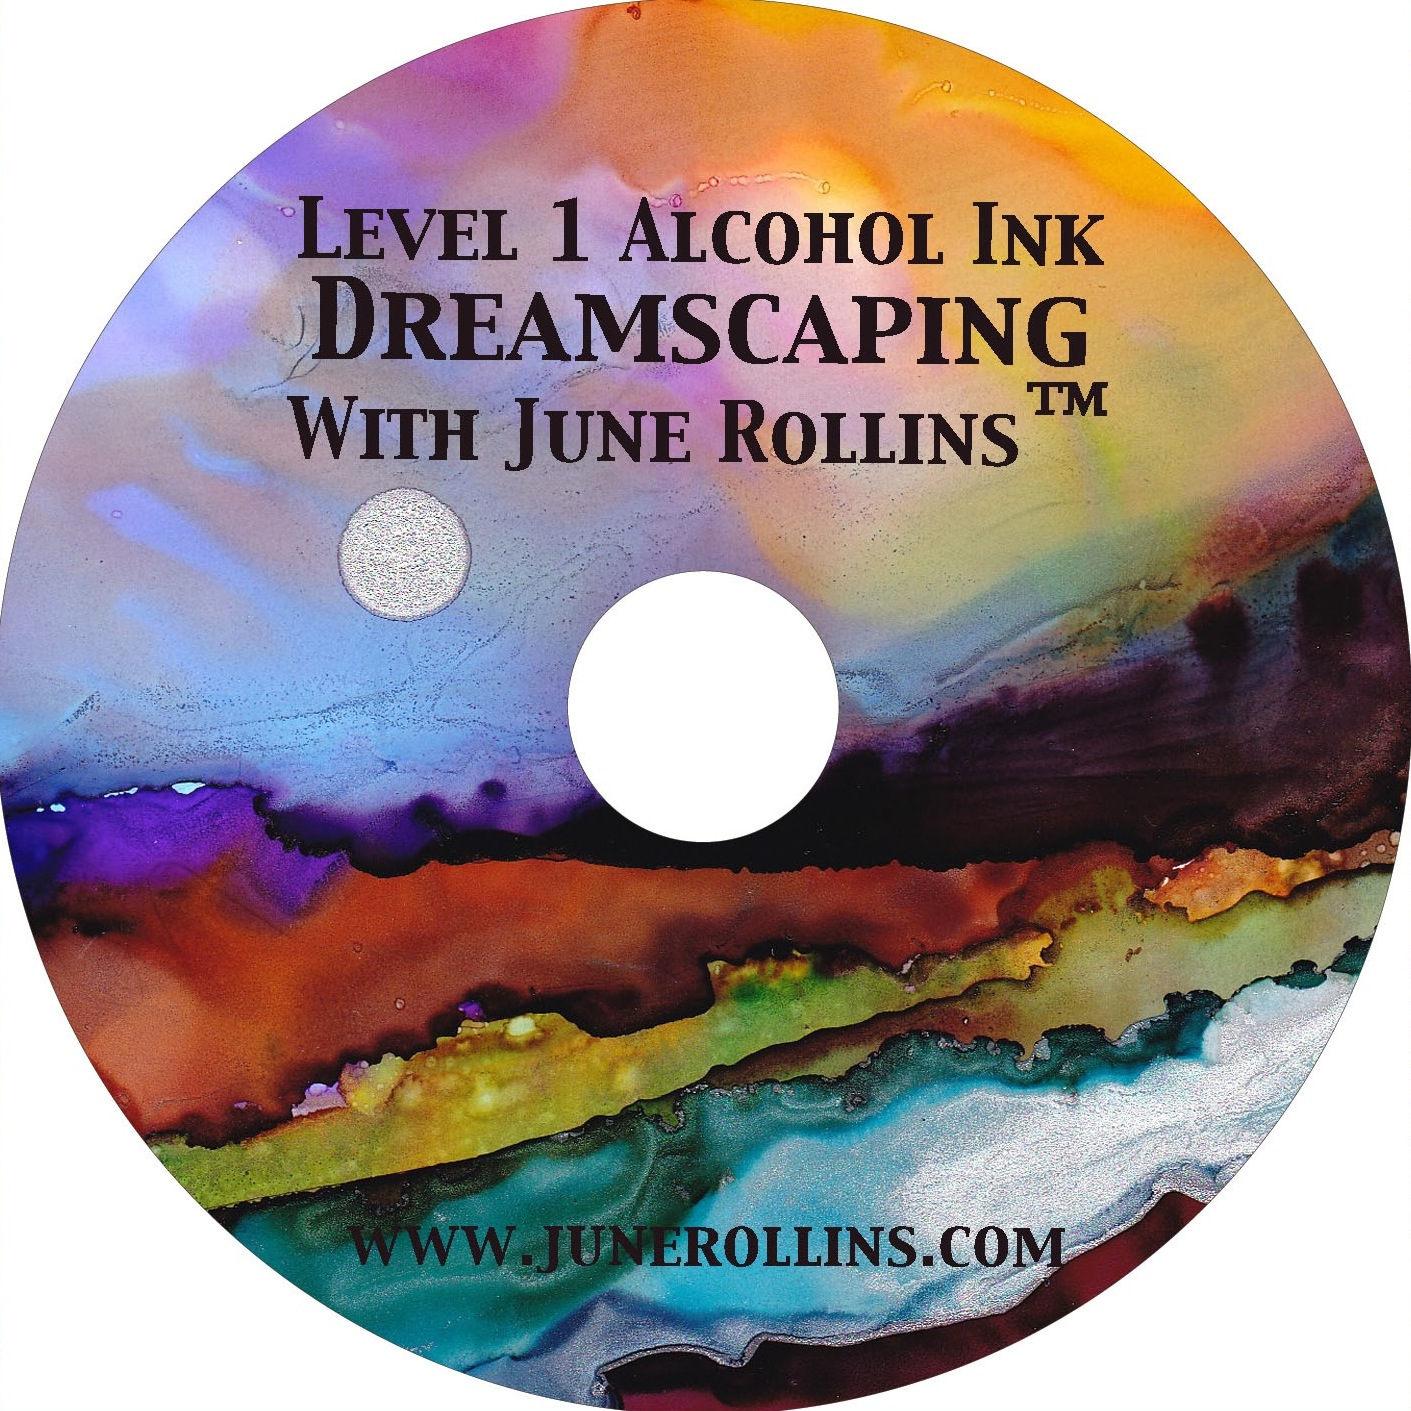 Alcohol inks page 11 june rollins art over 300 alcohol ink dreamscaping dvds have sold baditri Images